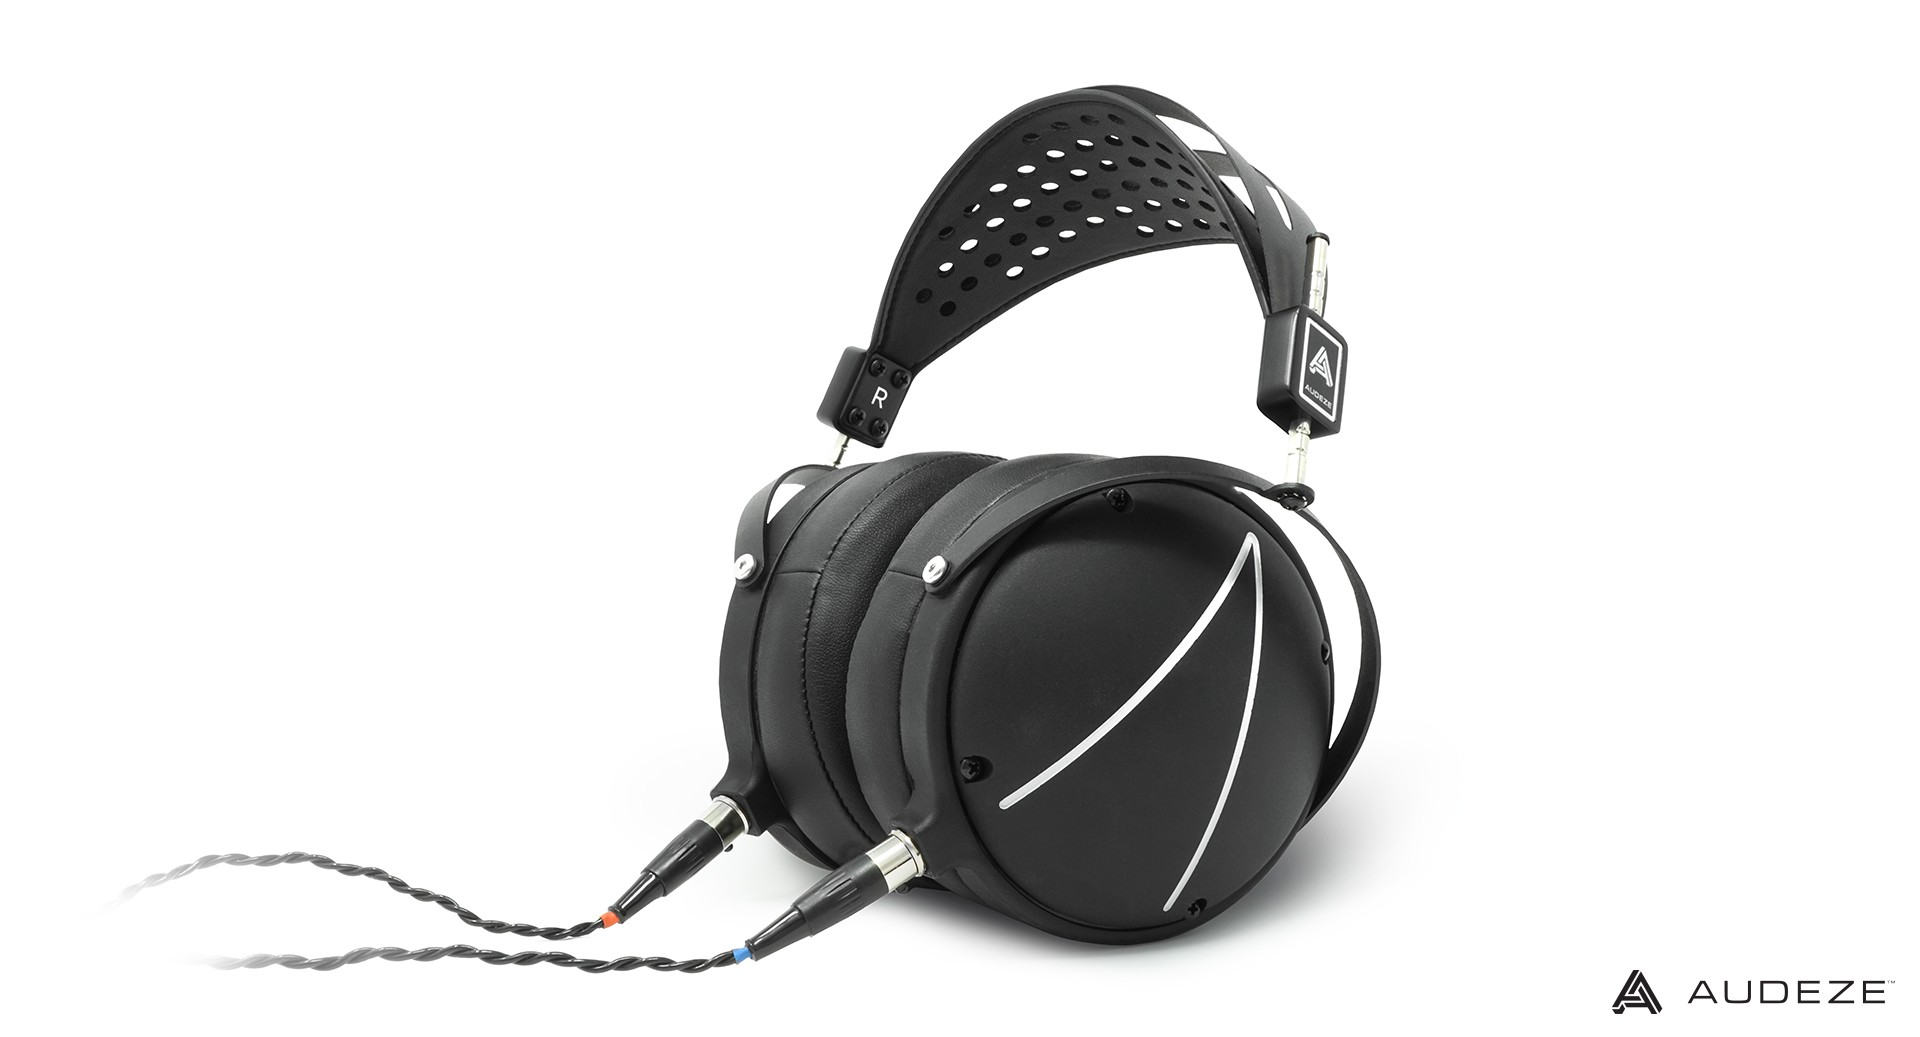 Audeze_LCD2_Closed-Back_ImageOnWhite2_Digital.jpg